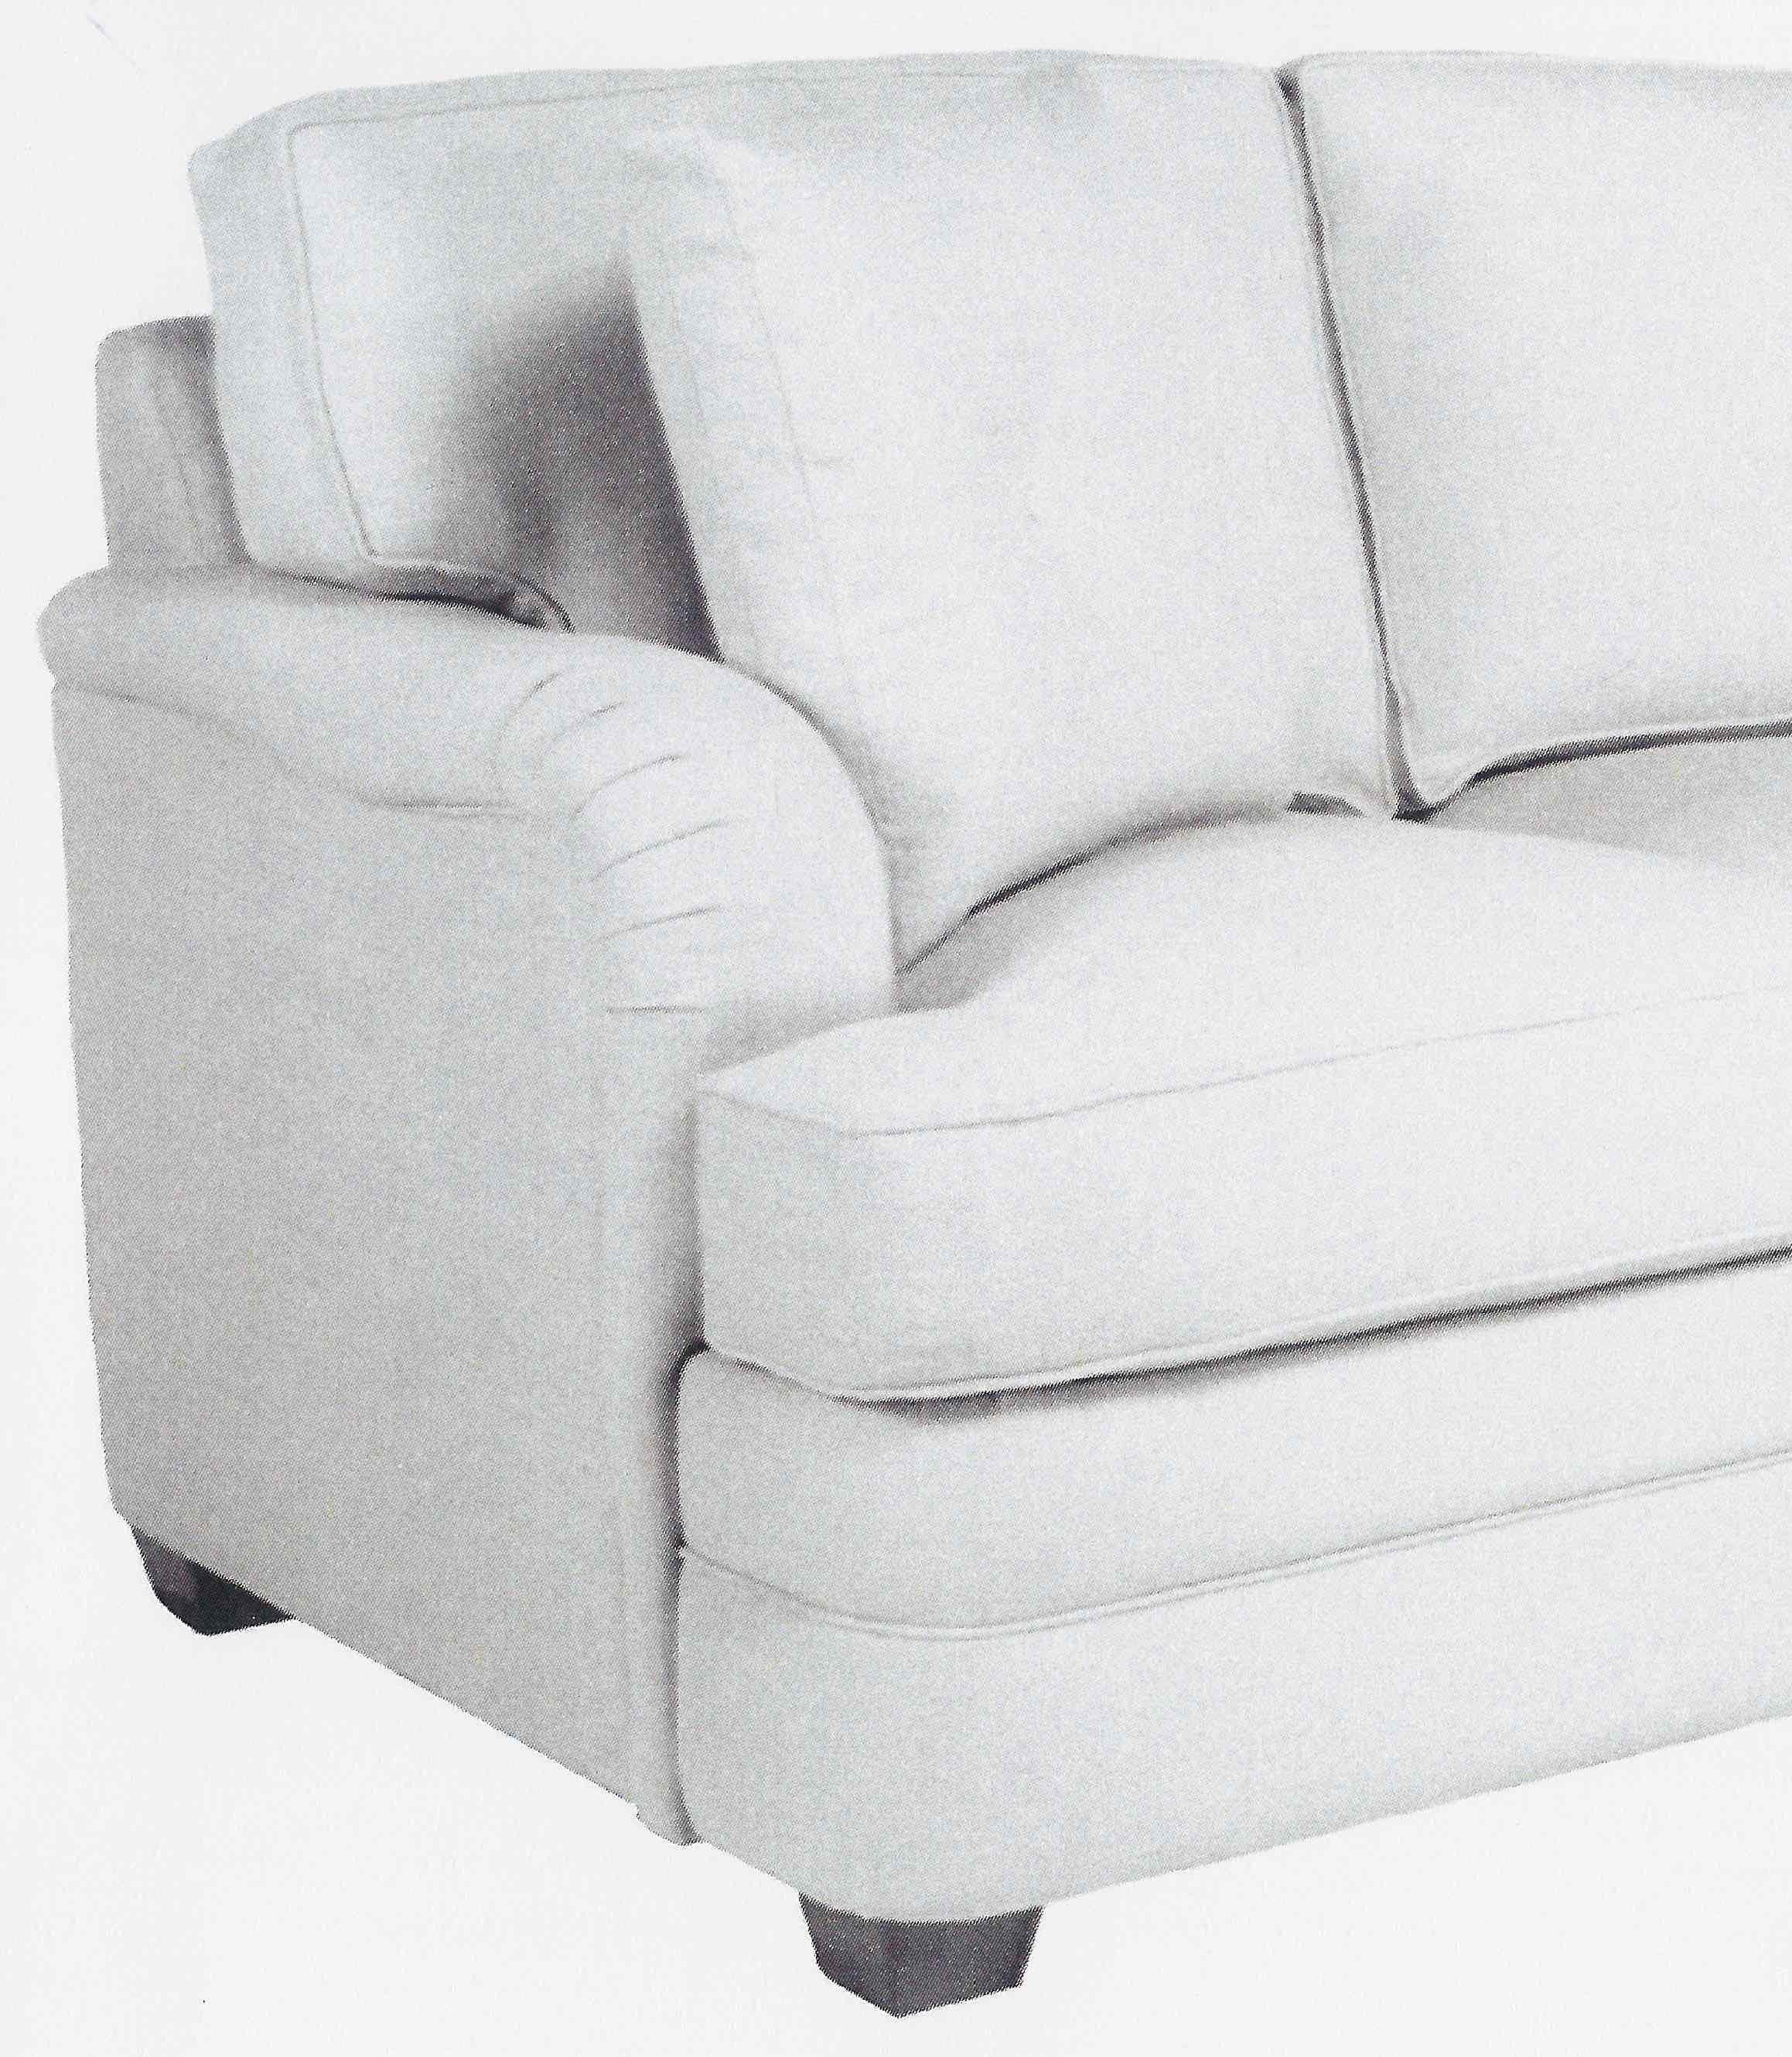 one arm sofa slipcover bed world newry cushions darcy ashley furniture home thesofa